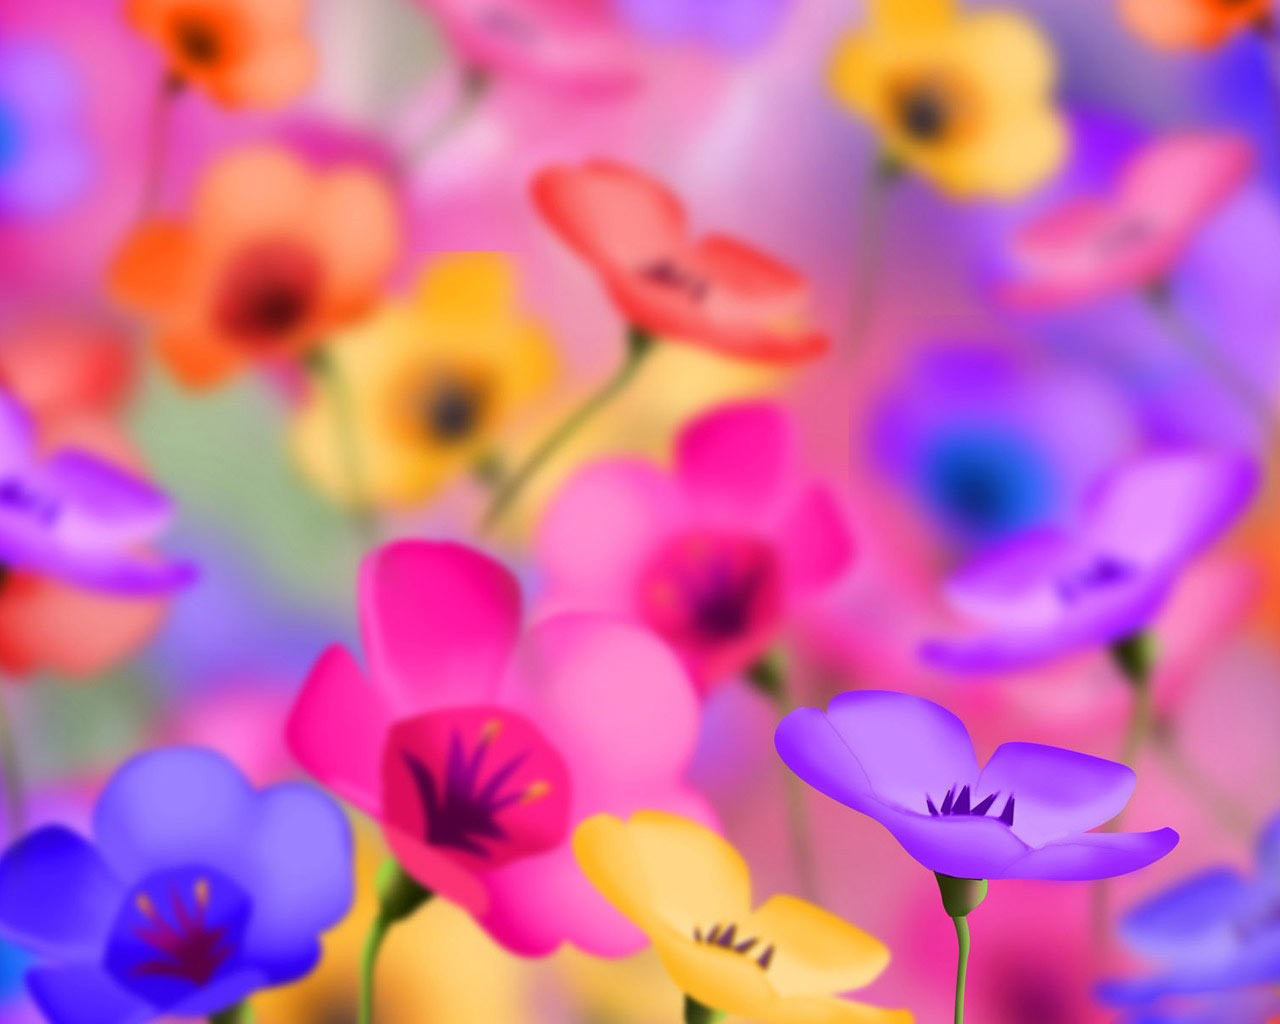 Flowers background desktop wallpapers